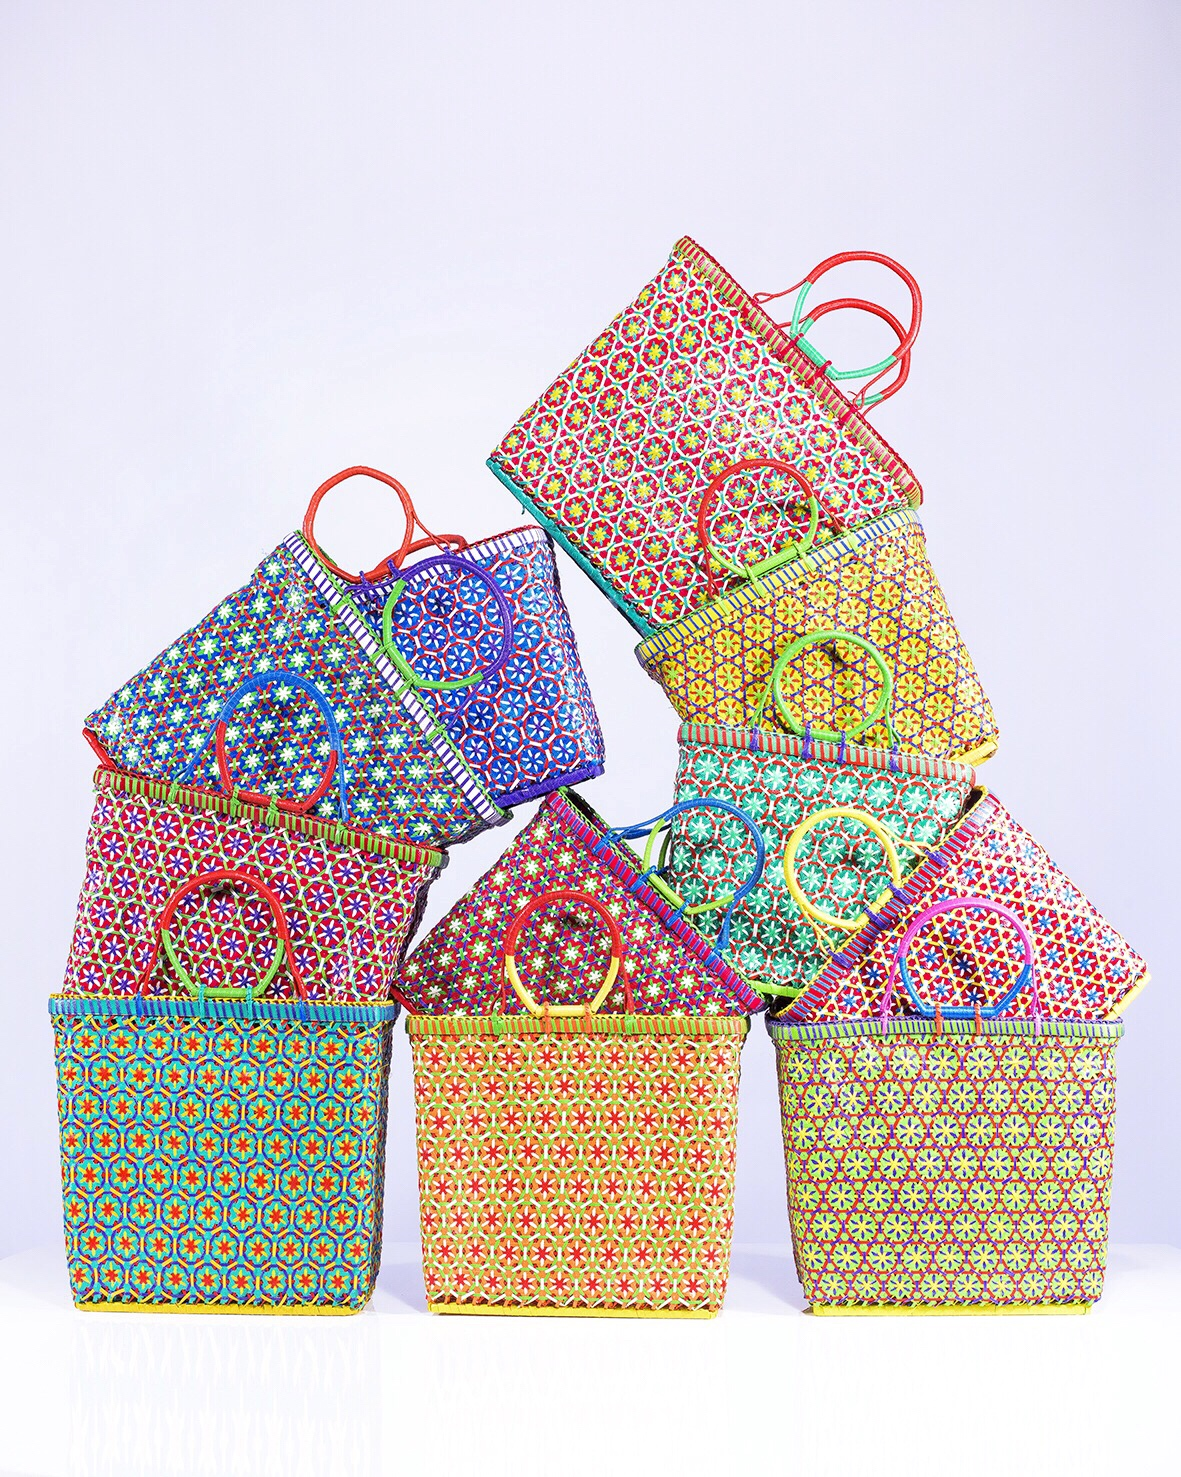 Our beach baskets by Mowgs in every colour of the rainbow,